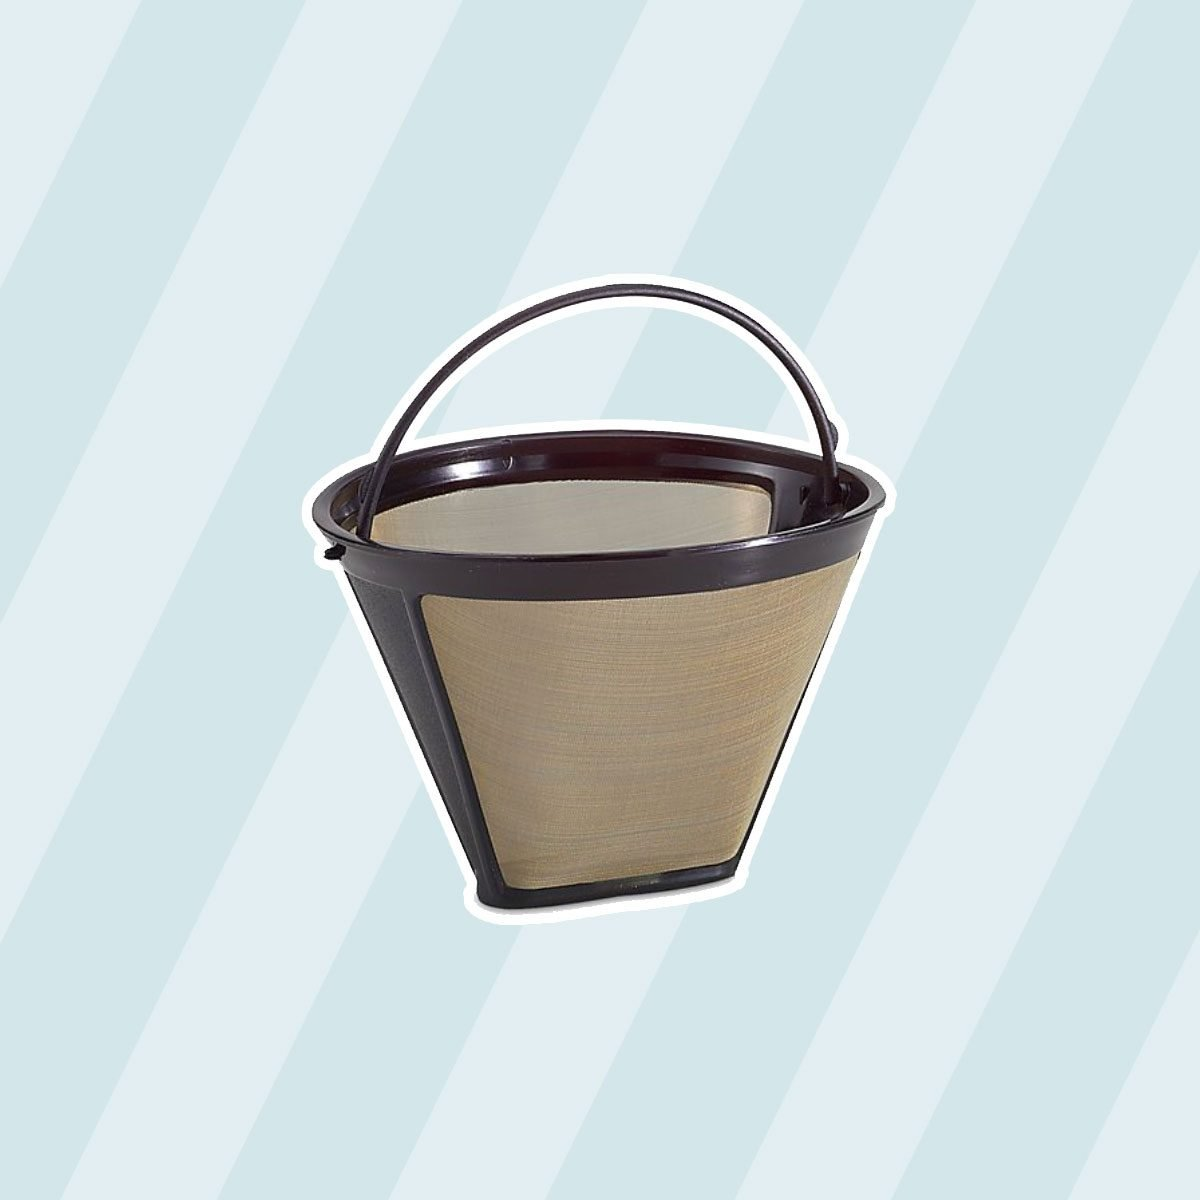 Cuisinart Gold Tone 4-Cup Coffee Filter